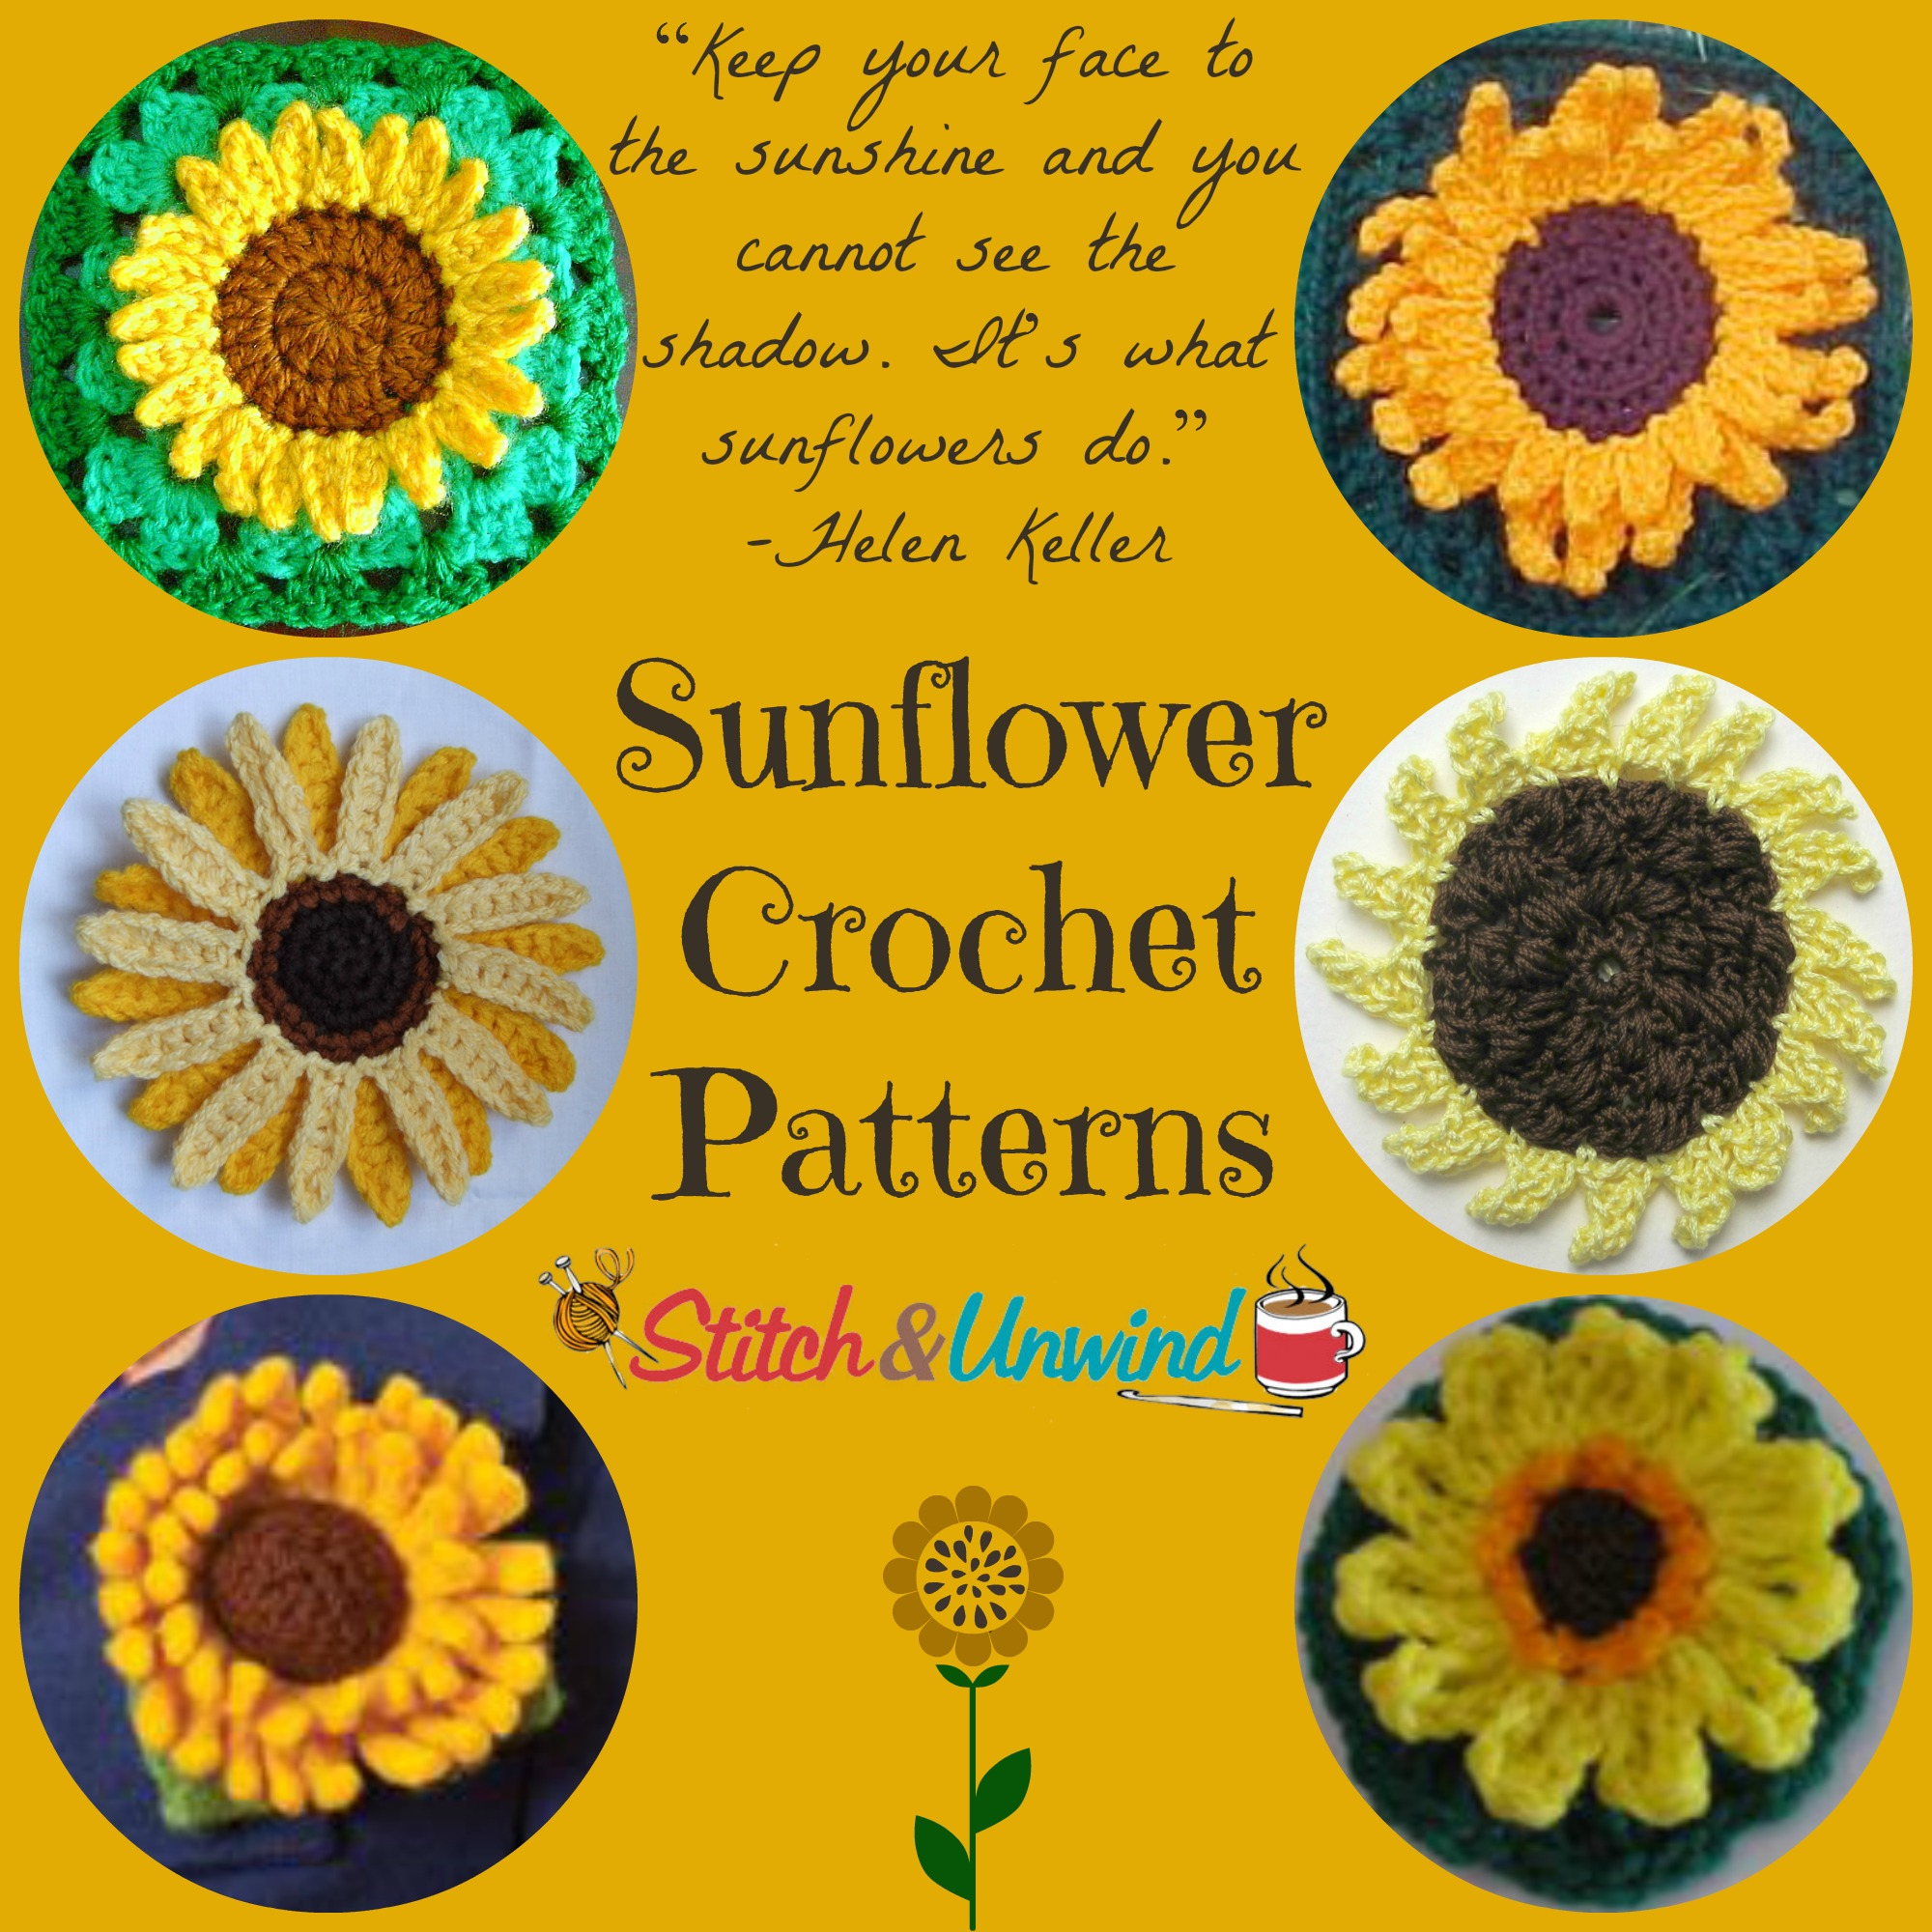 Plan Ahead For Sunshine 13 Sunflower Crochet Patterns Stitch And Unwind